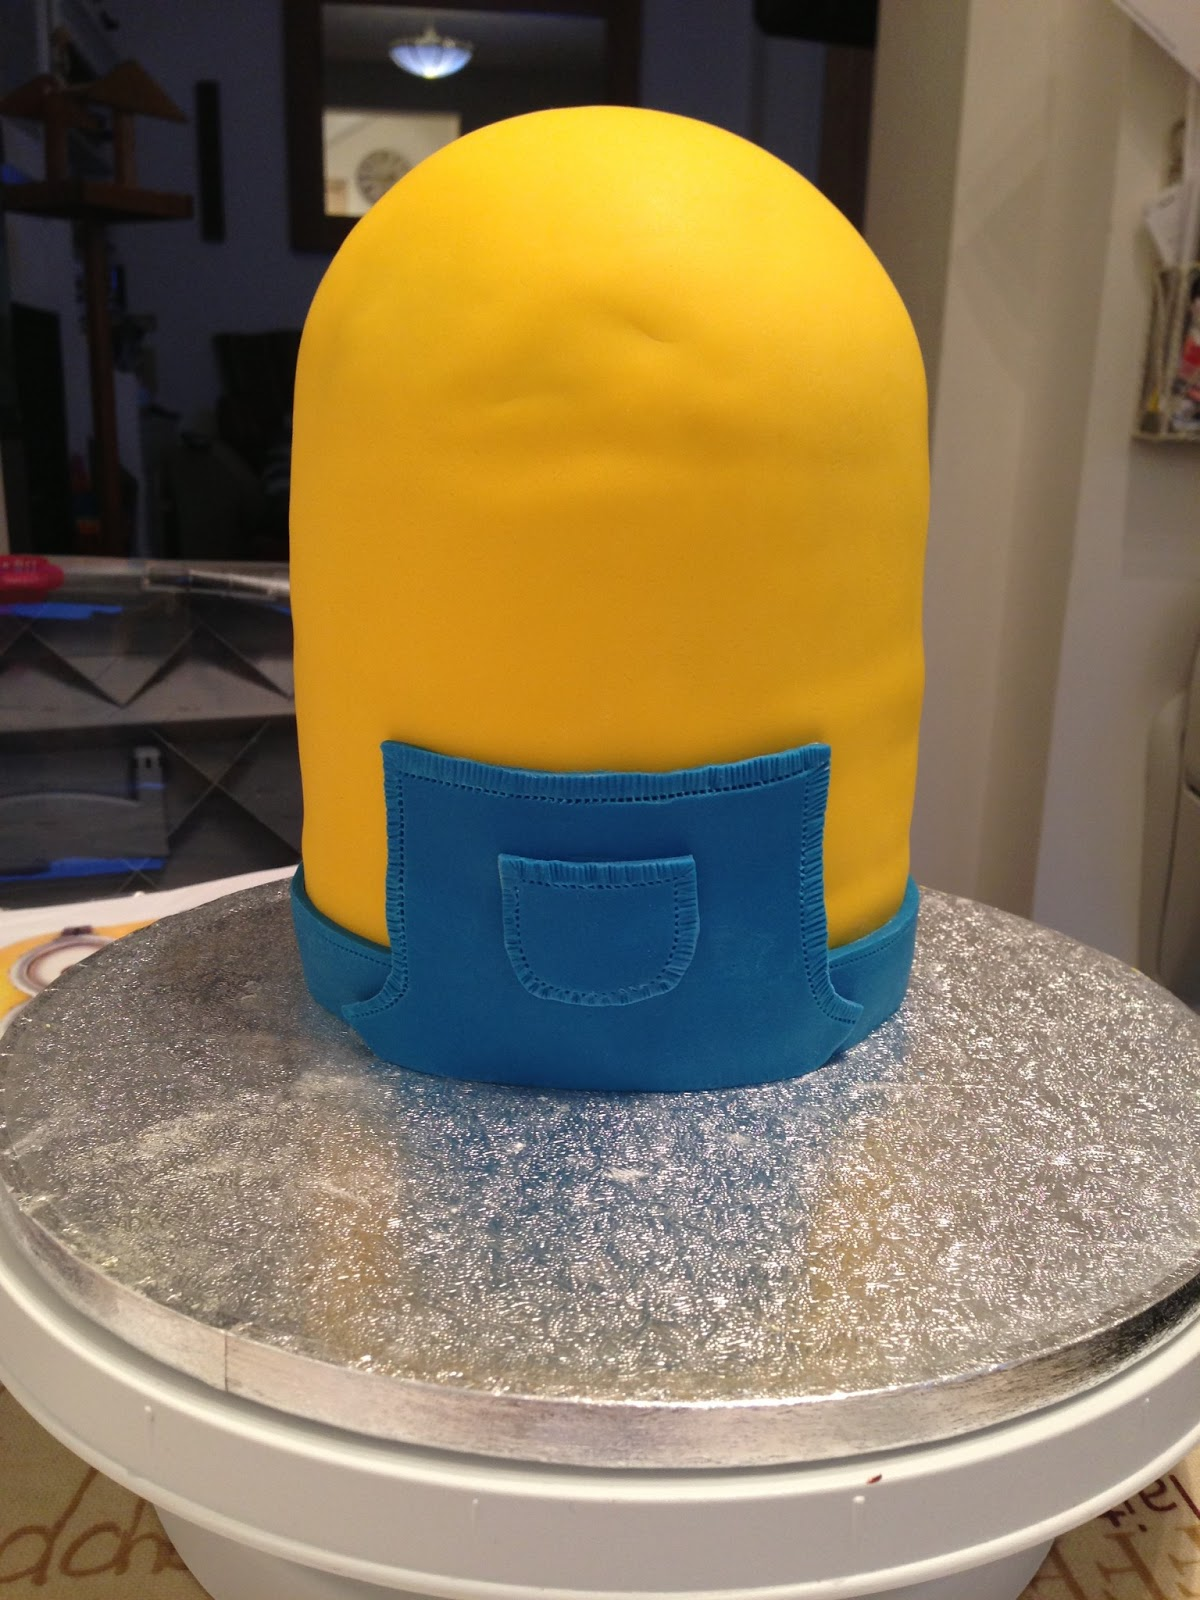 What an awesome cake Despicable Me Minion Cake